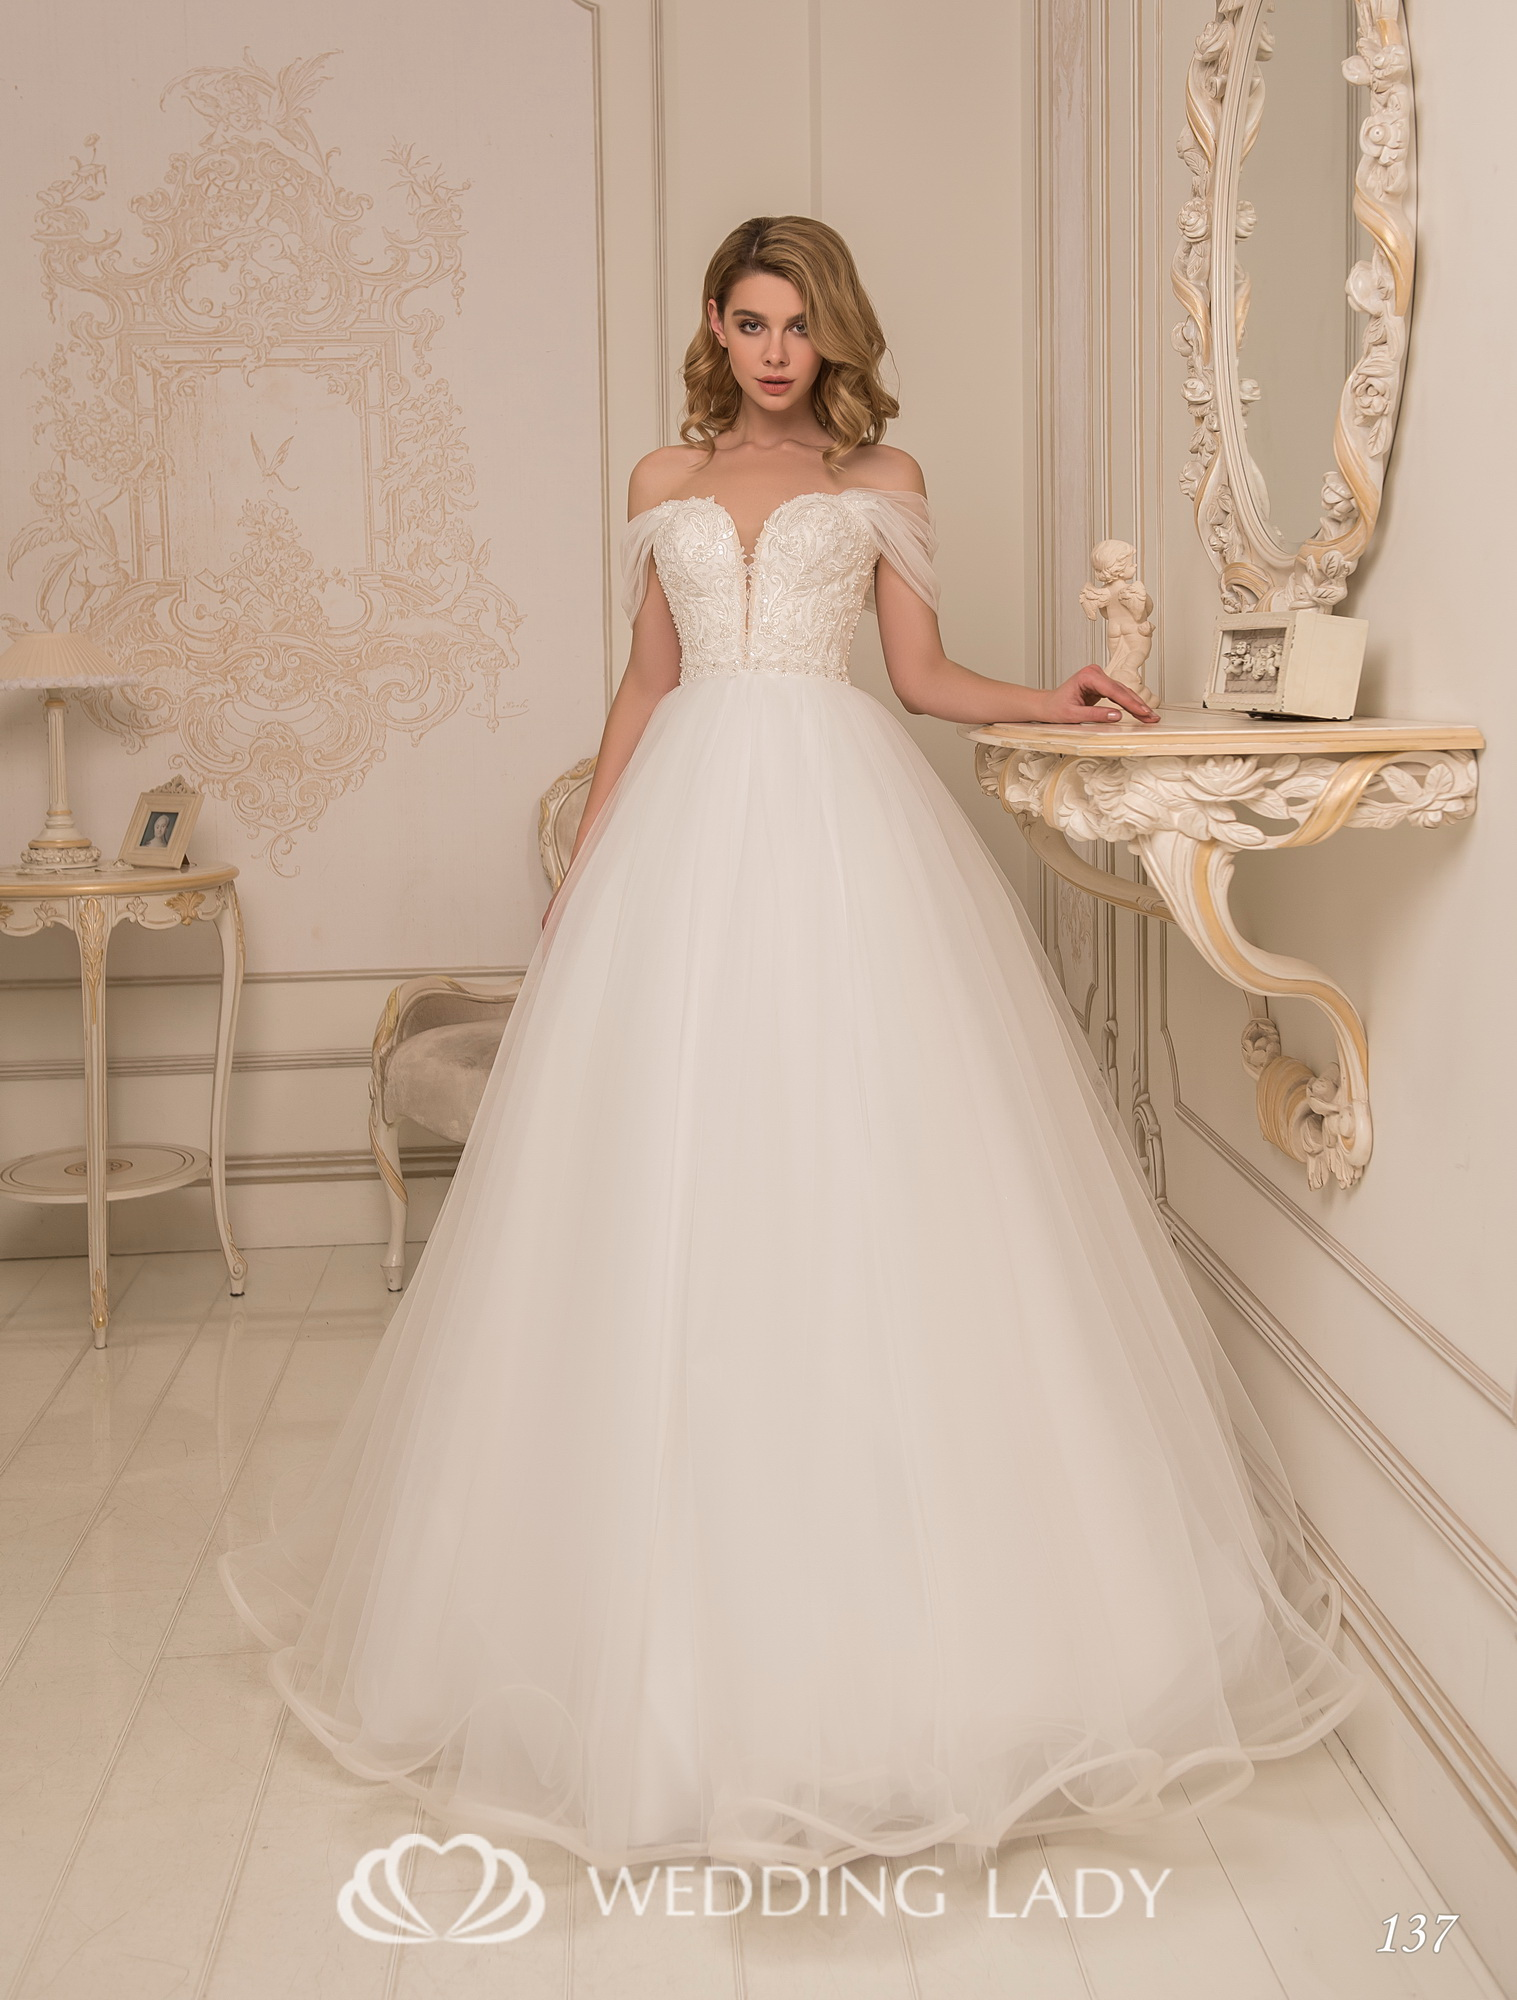 https://wedding-lady.com/images/stories/virtuemart/product/137-------(1).jpg